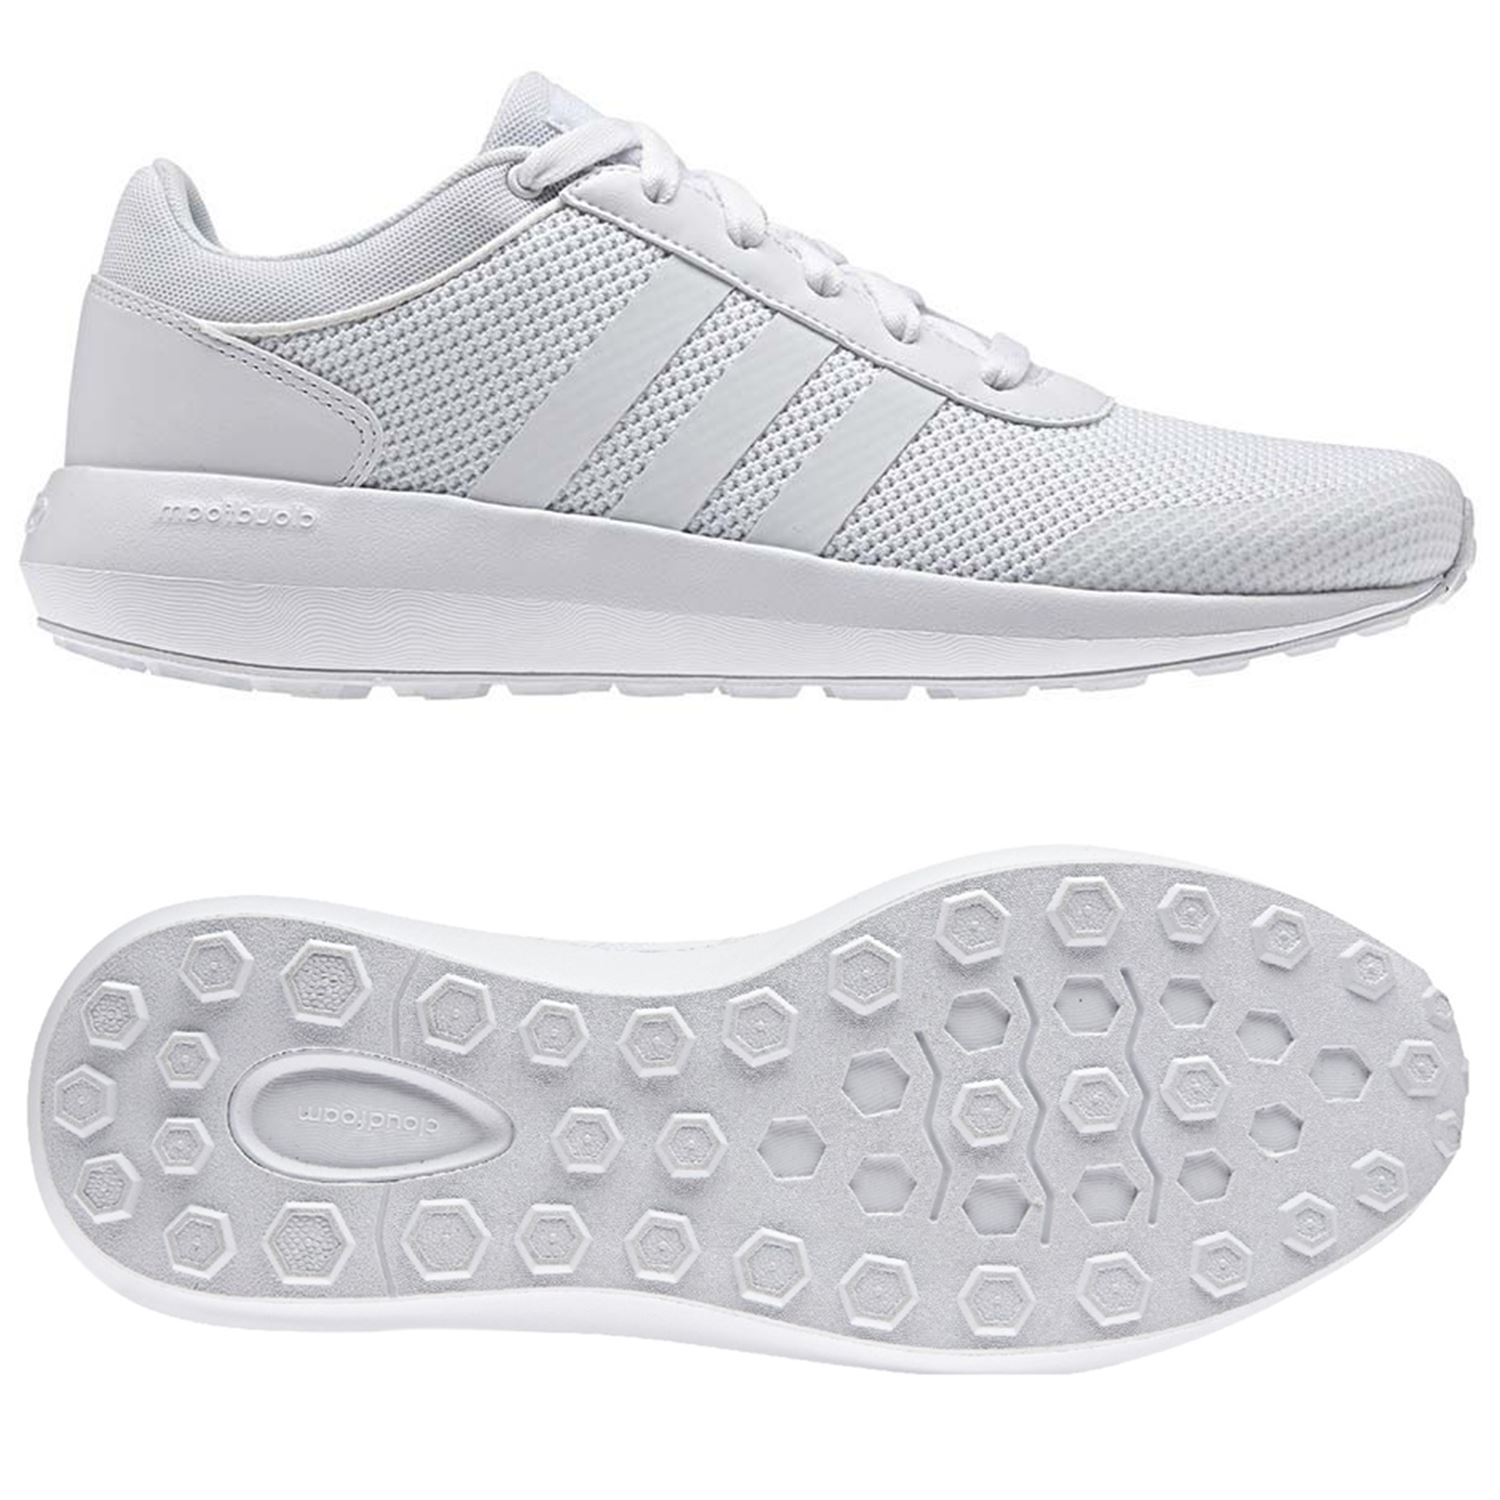 half off 943dc 21313 Details about adidas NEO CLOUDFOAM RACE TRAINERS MENS SHOES RUNNING UK  SIZES 7.5 - 12 FITNESS